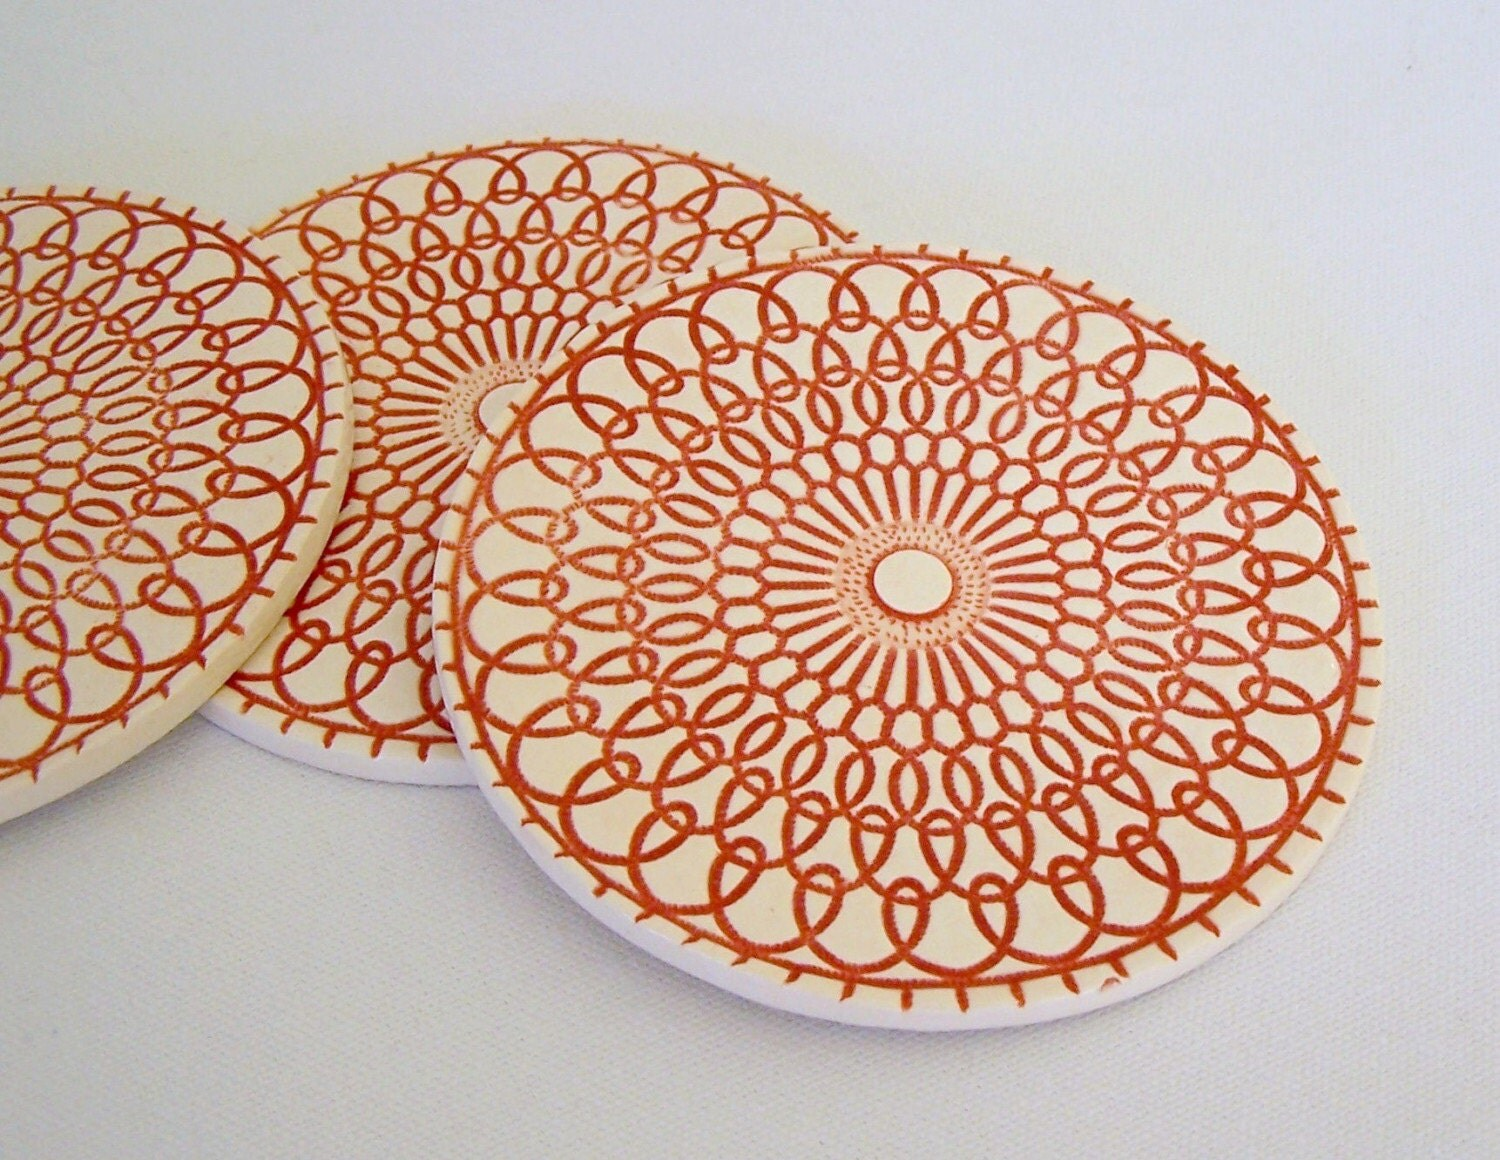 Retro Porcelain Coasters, Set of Four